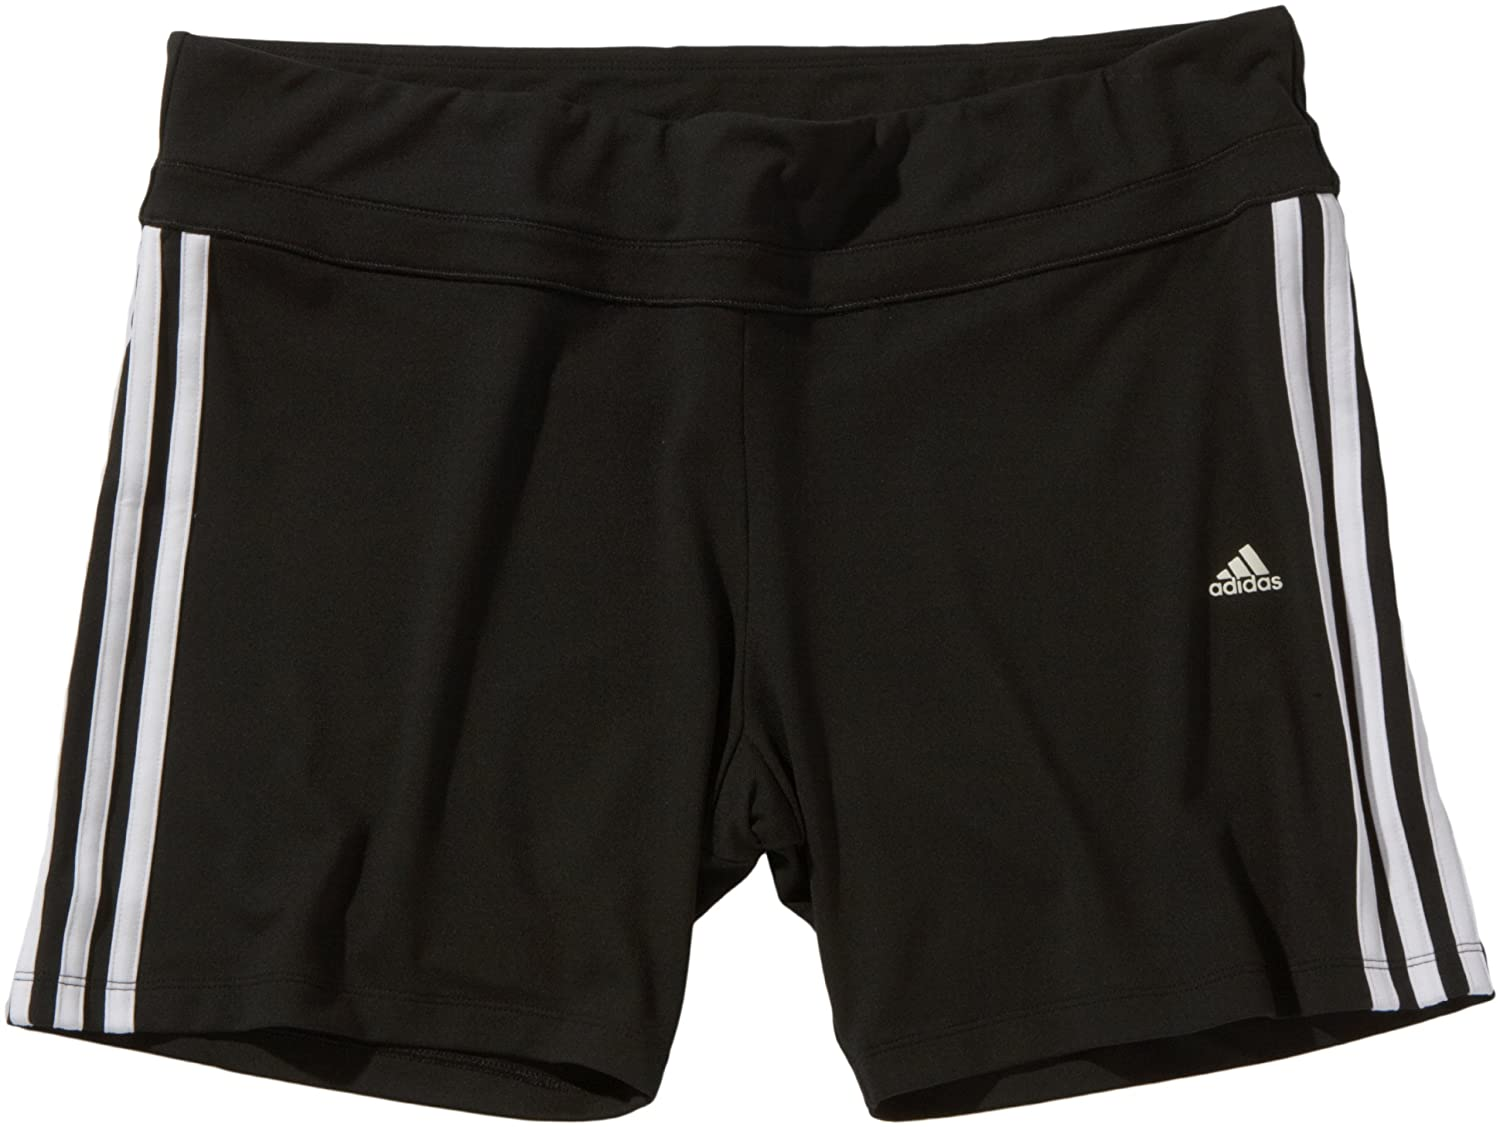 finest selection cb709 660d7 adidas Clima Essentials Women s Shorts 3-Stripes Tight black   white  Size XL  Amazon.co.uk  Sports   Outdoors